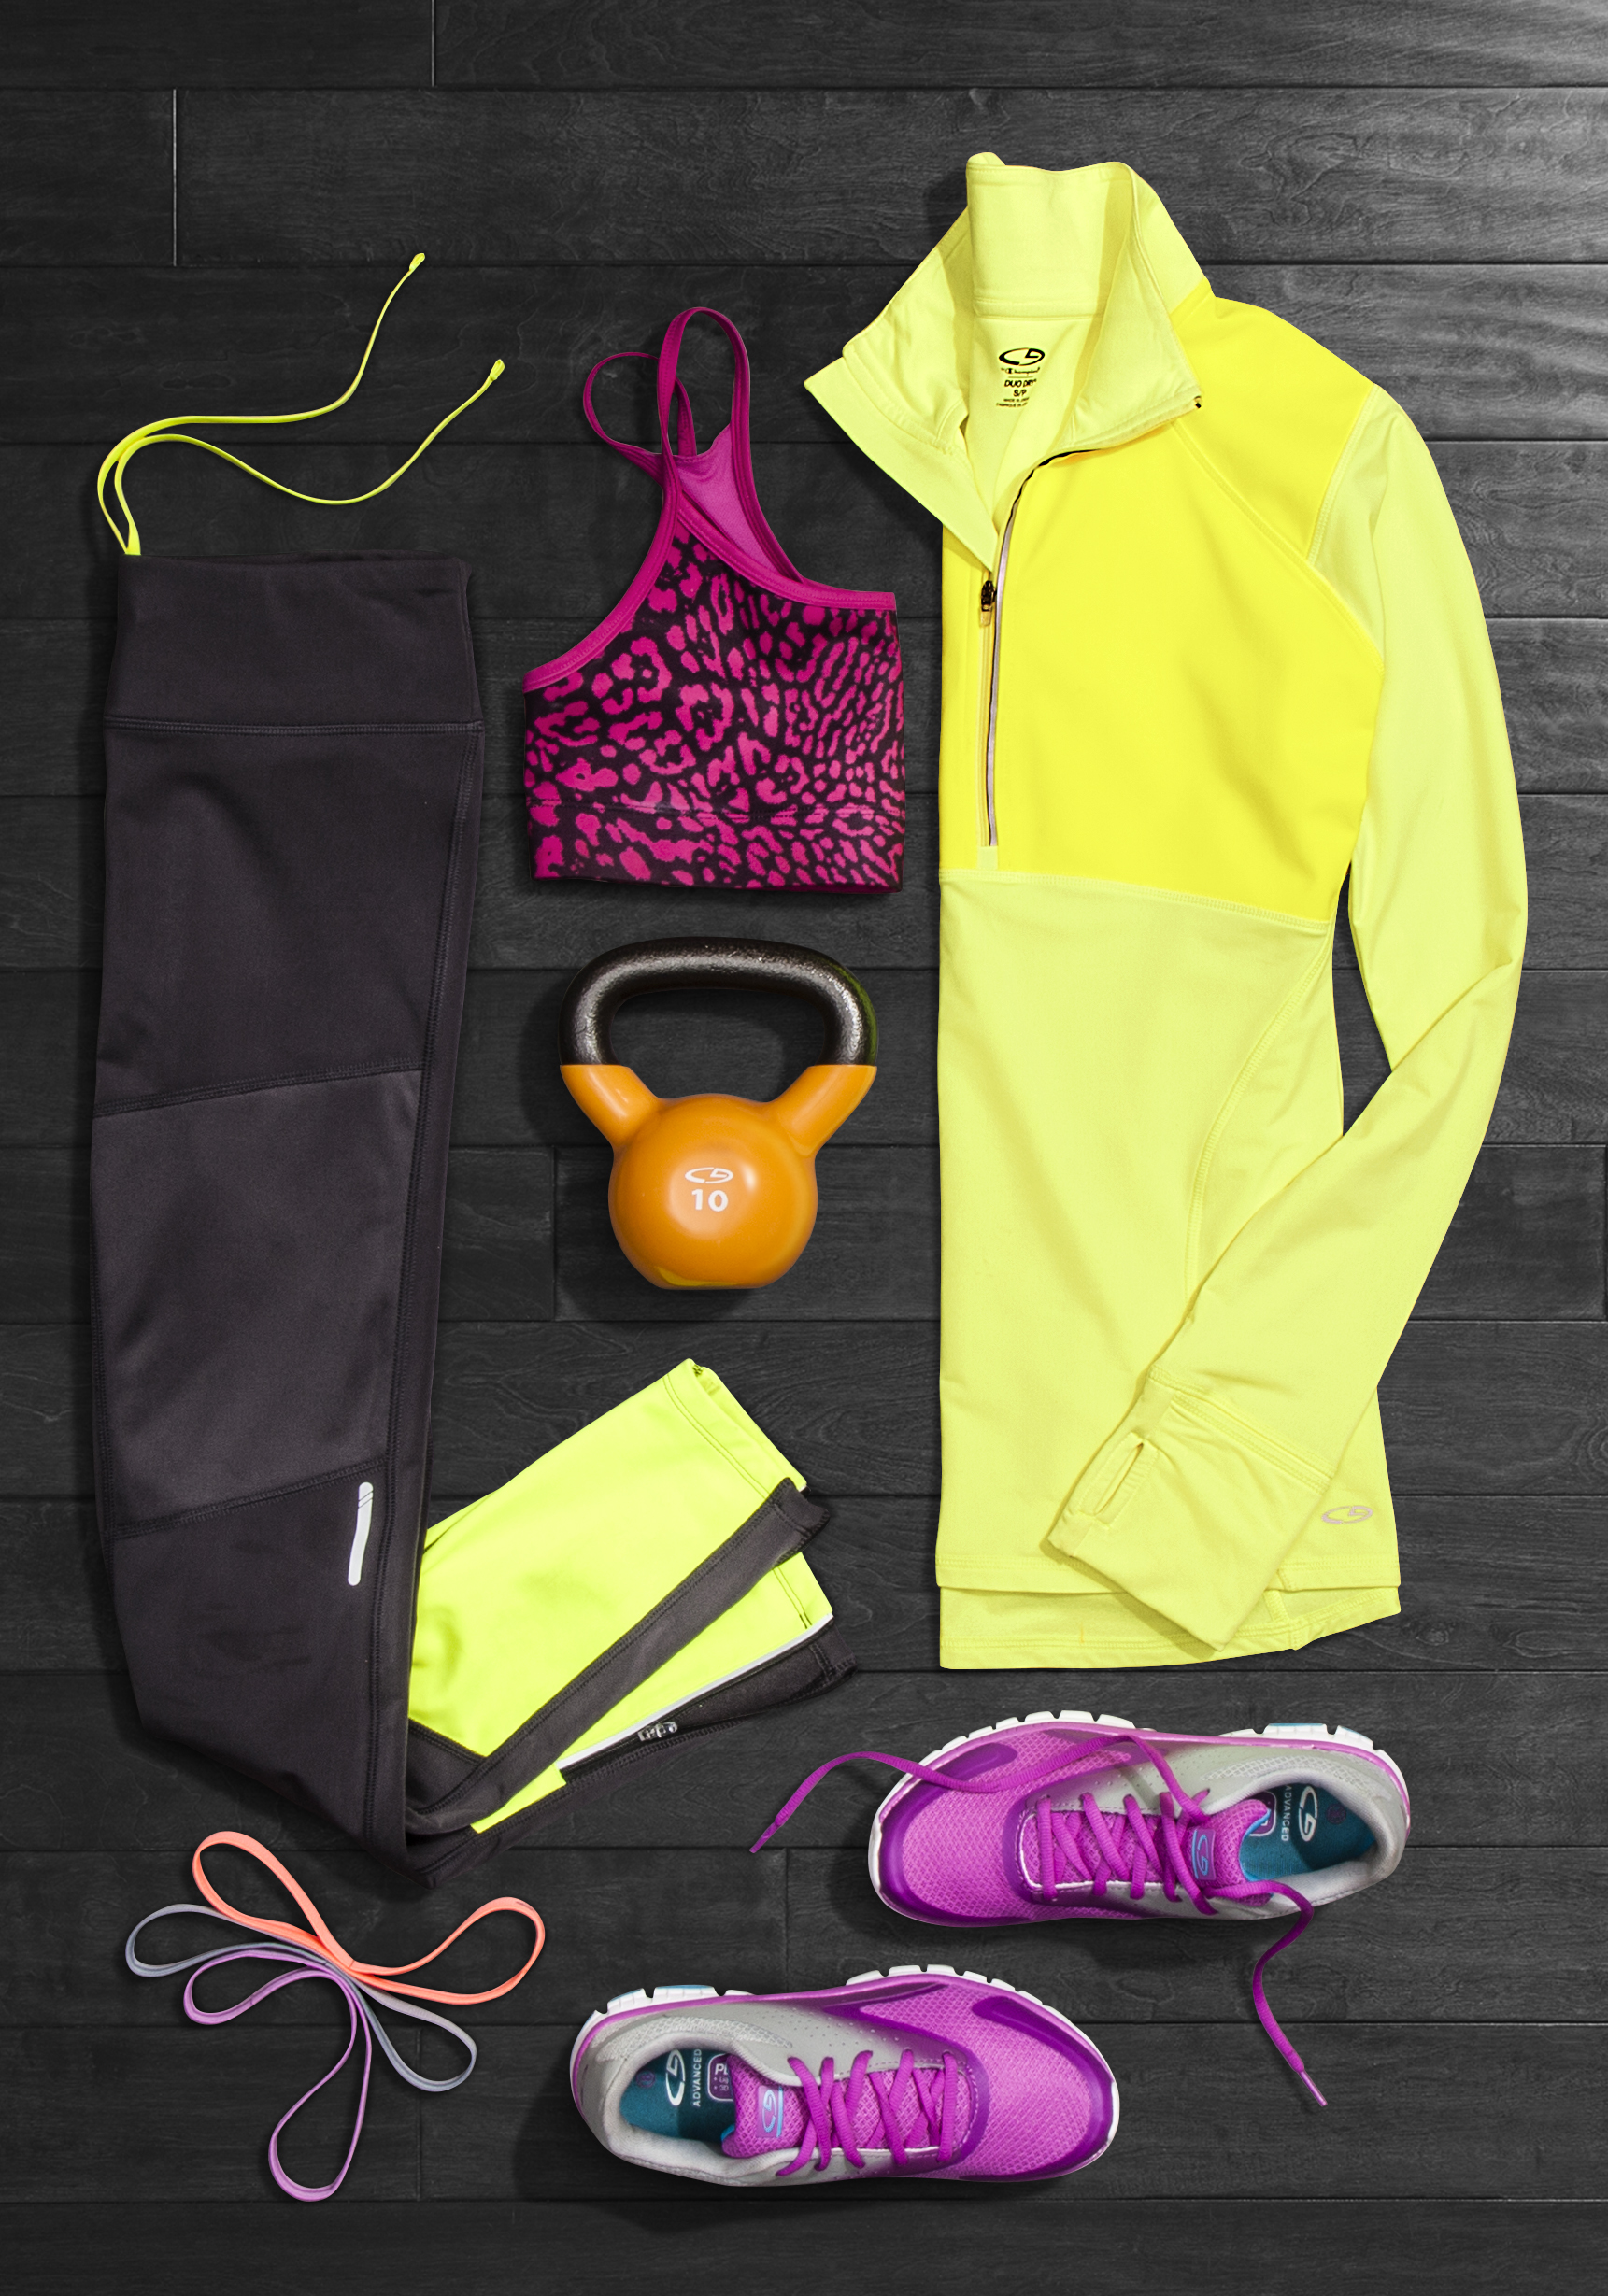 Look01 WomensRun Product Download. C9 By Champion Womens Running Gear fa85e0ebf